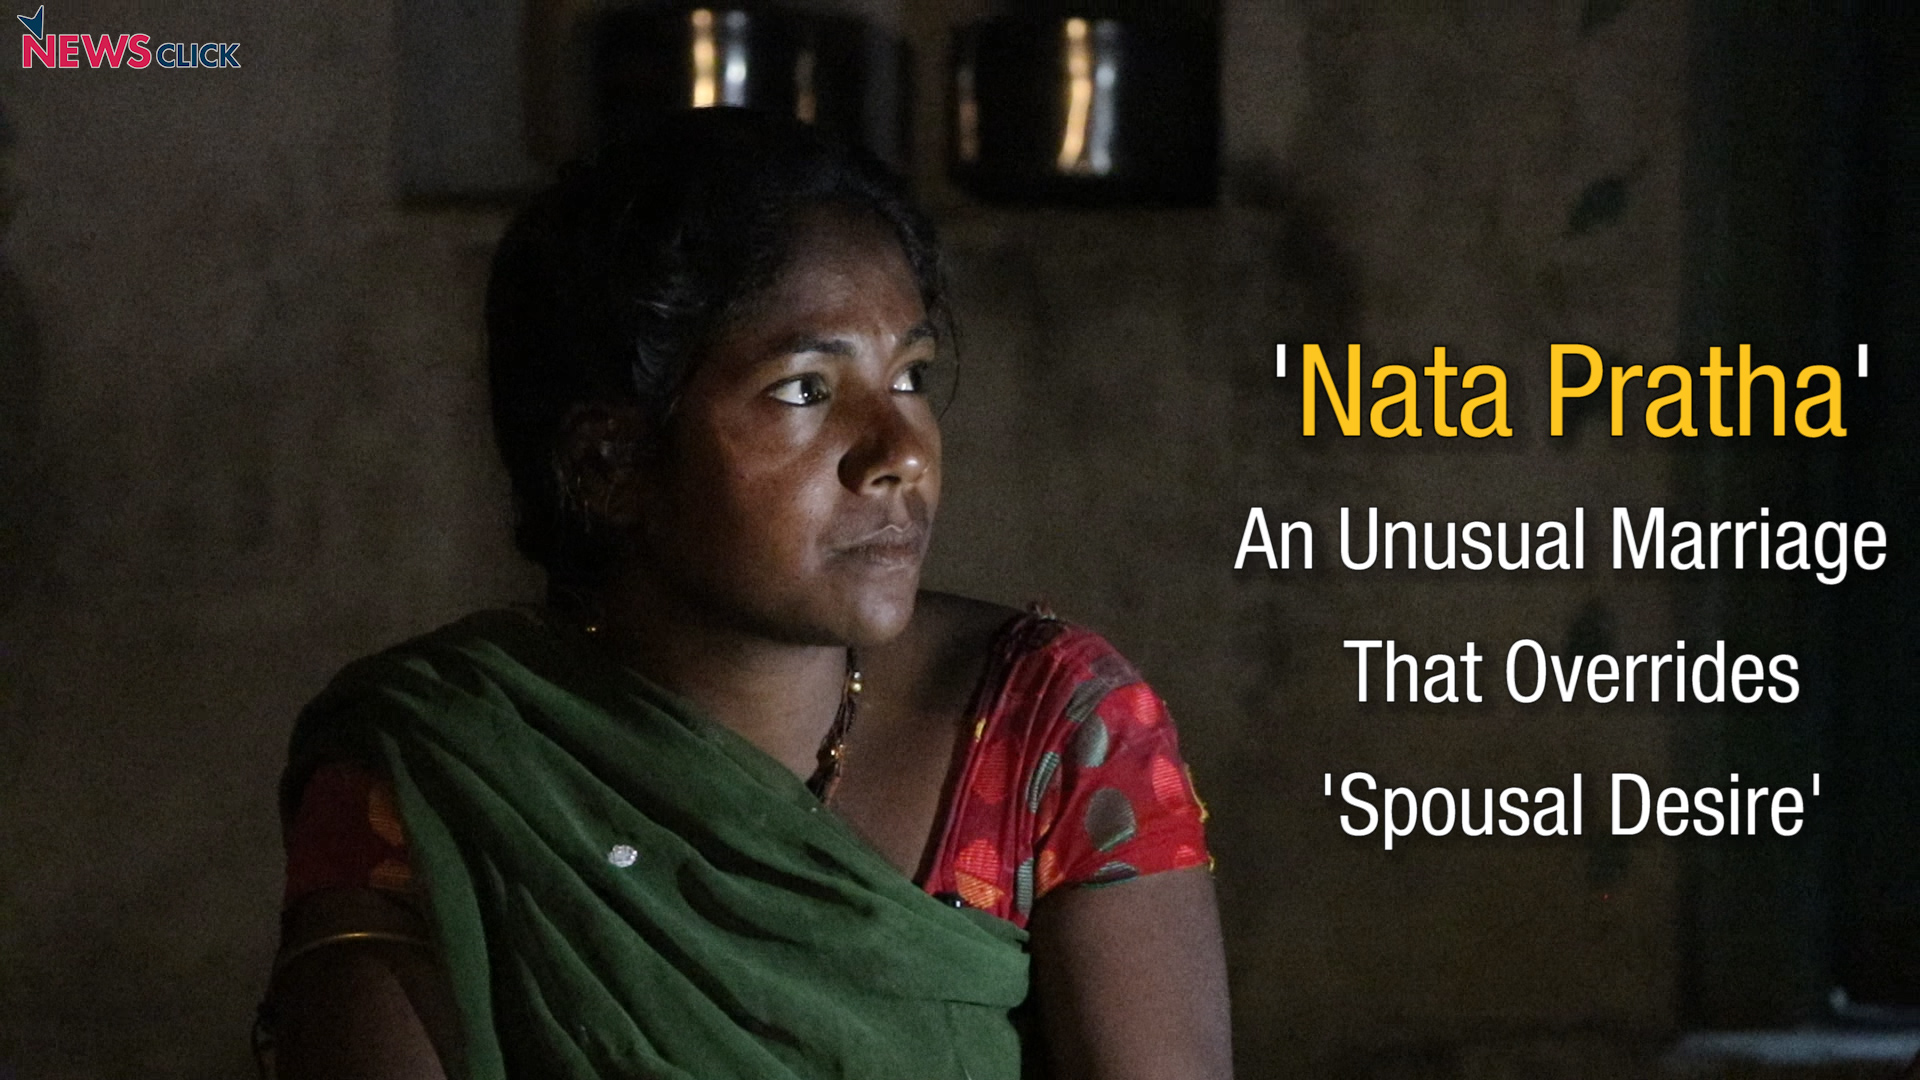 'Nata Pratha' : An Unusual Marriage That Overrides 'Spousal Desire'